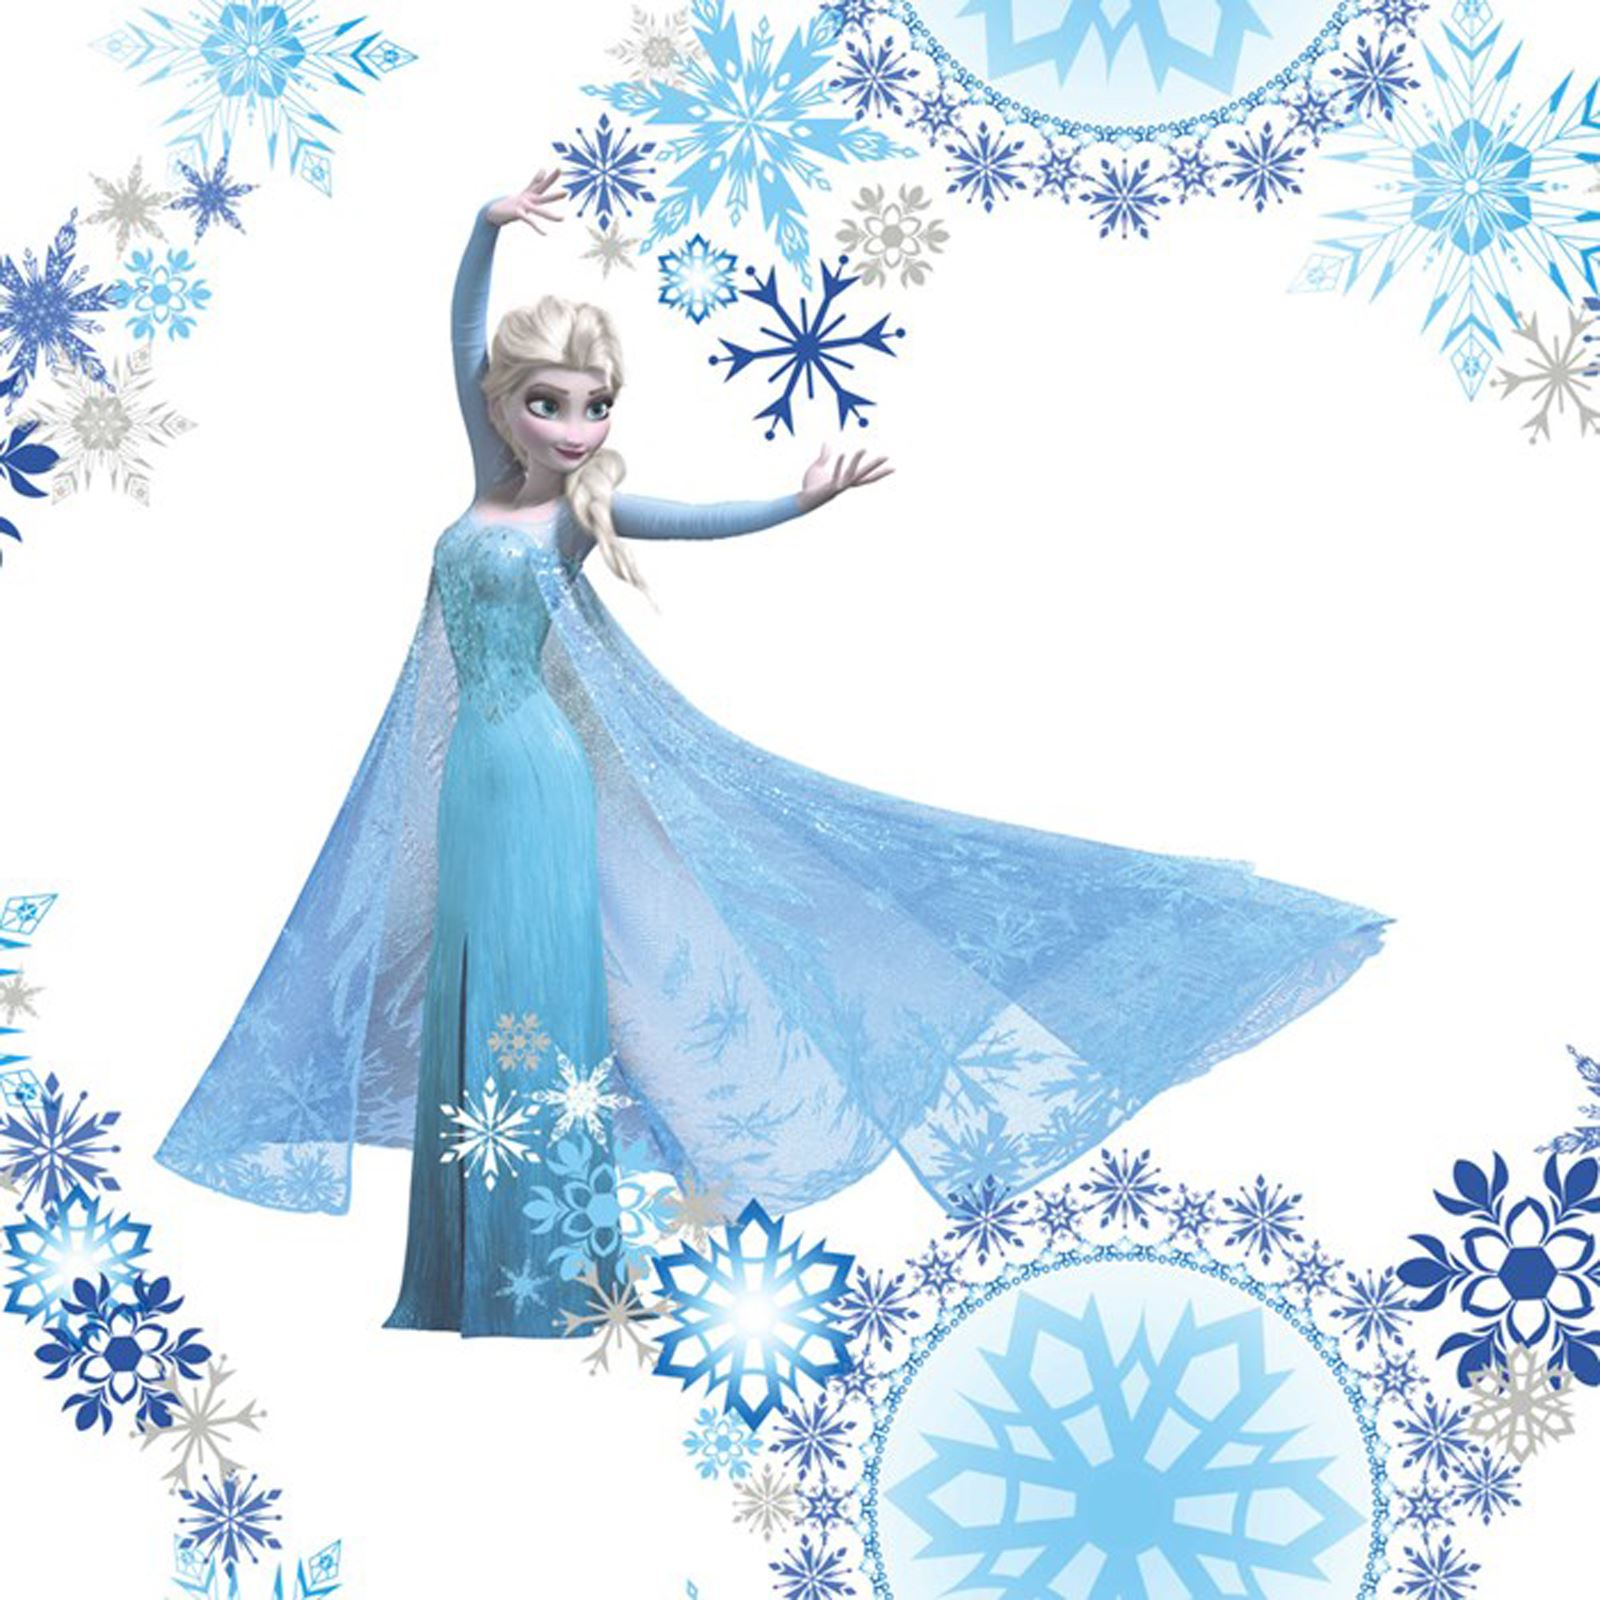 disney frozen carta da parati, bordi e adesivi da parete ... - Carta Da Parati Bordi Decorativi